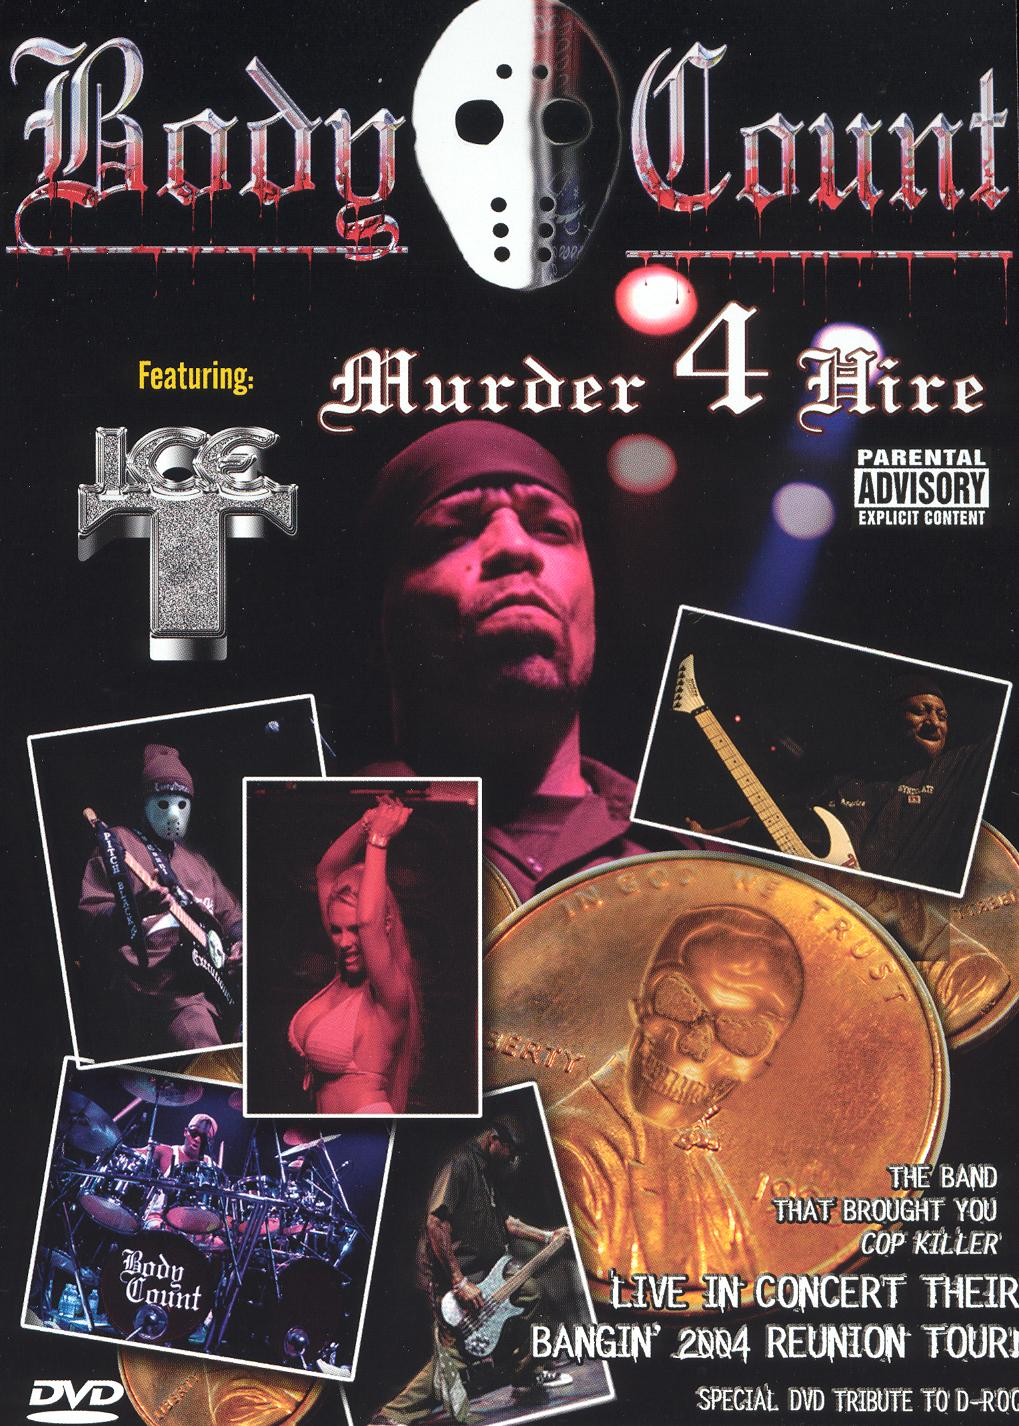 Body Count: Featuring Murder 4 Hire - Live in Concert